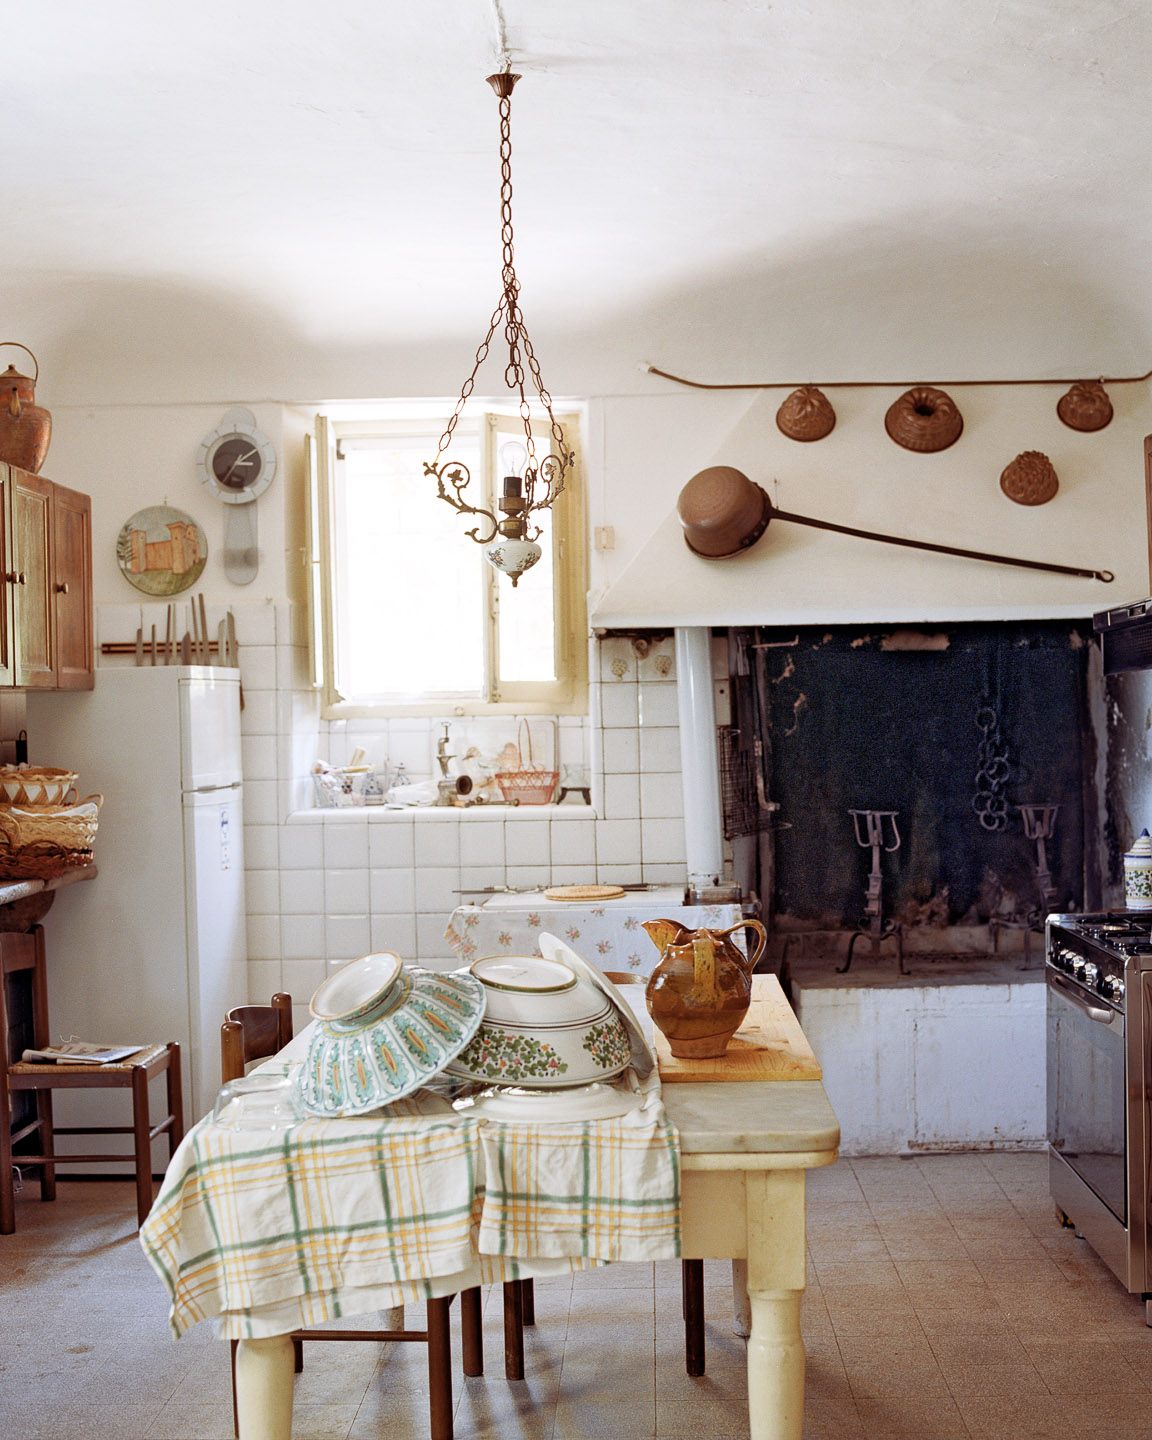 FrancescoLagnese_VM_Kitchen_Still_28